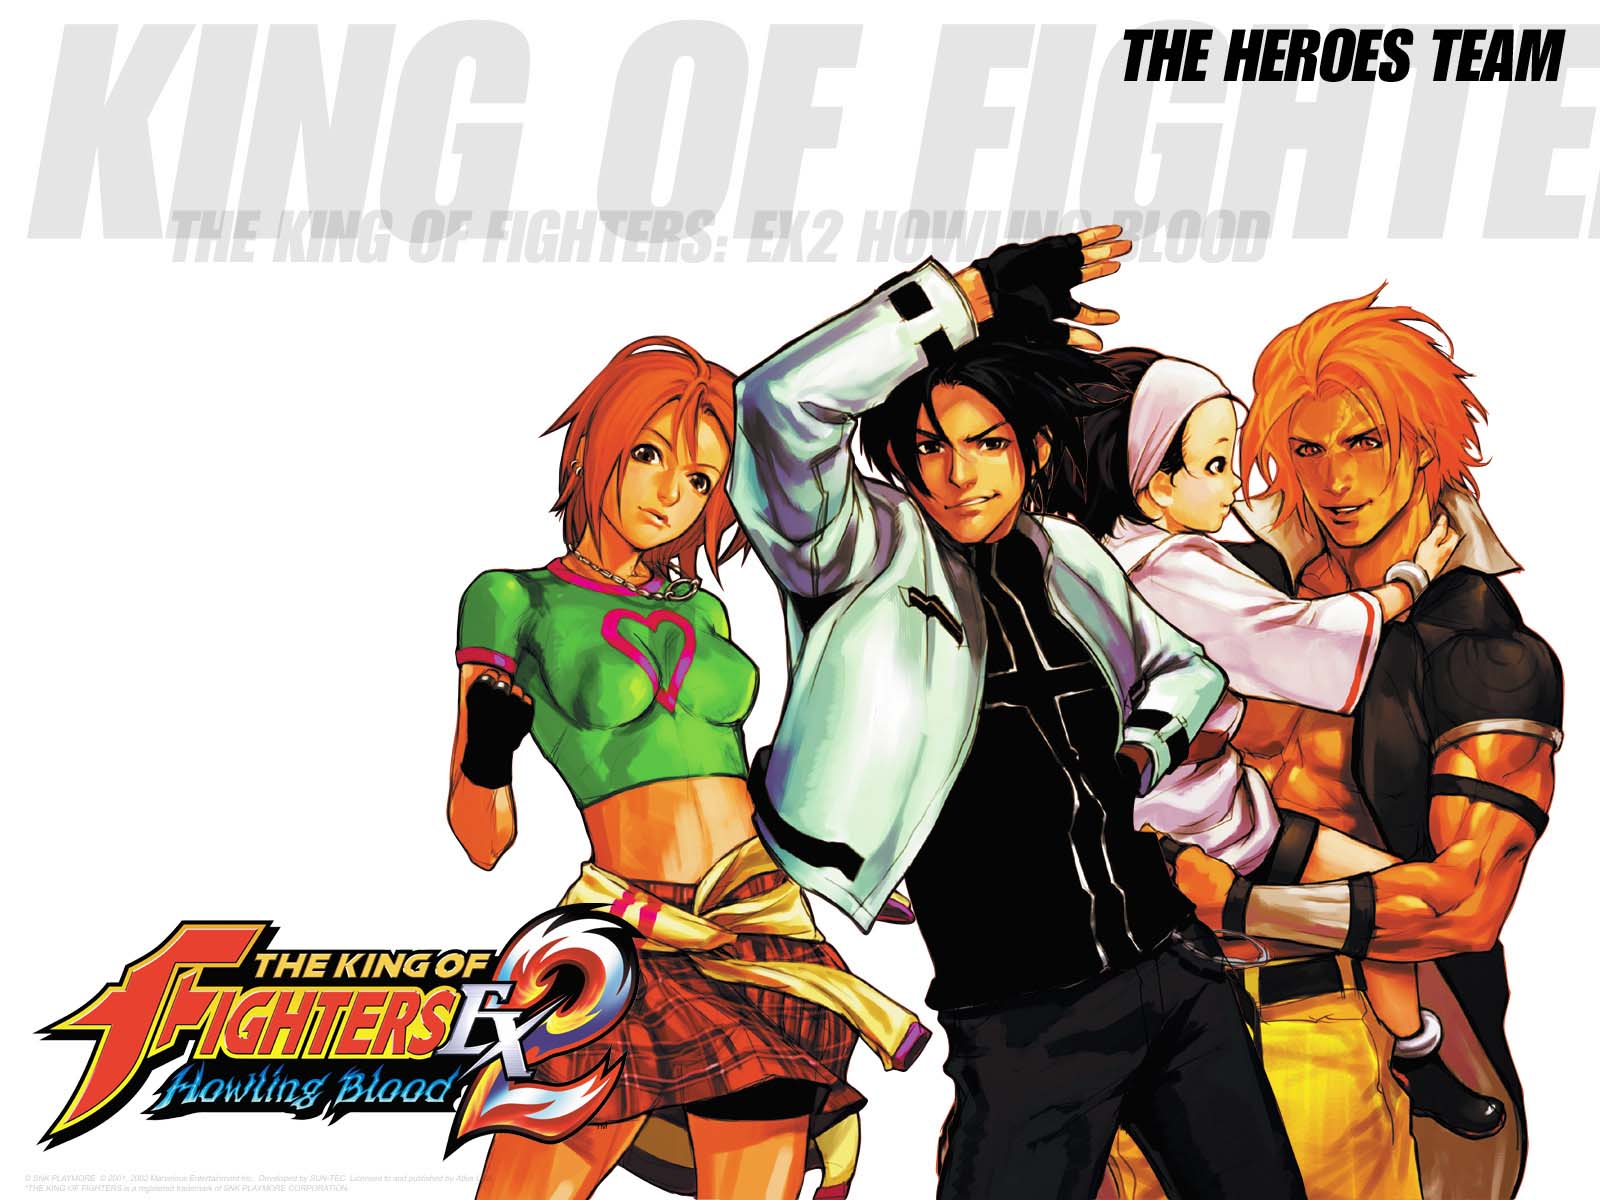 THE KING OF FIGHTERS EX2 HOWLING BLOOD WALLPAPERS